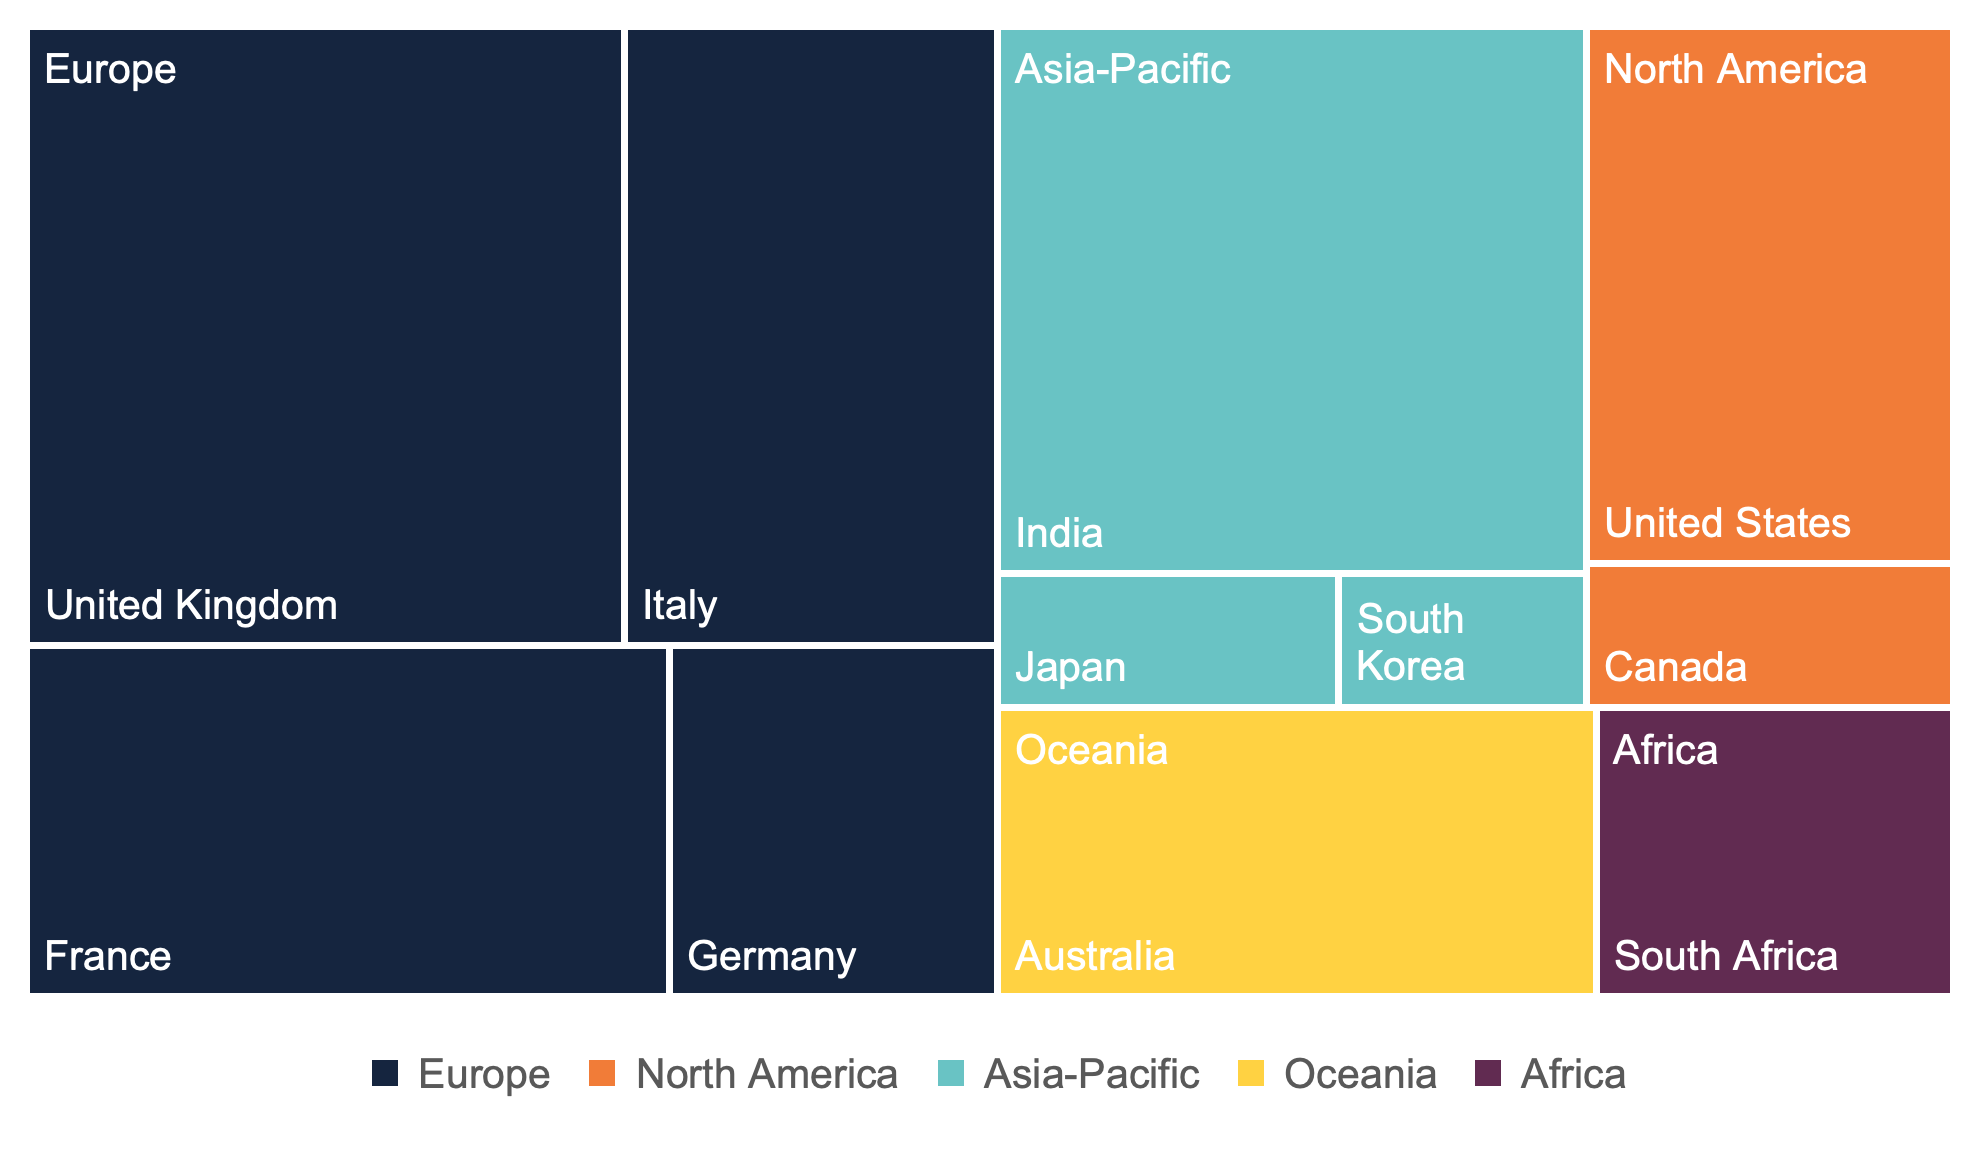 Fossil fuel subsidies from the G7 and the four countries invited to join the 2021 G7 (Australia, India, South Africa and South Korea) in 2019.